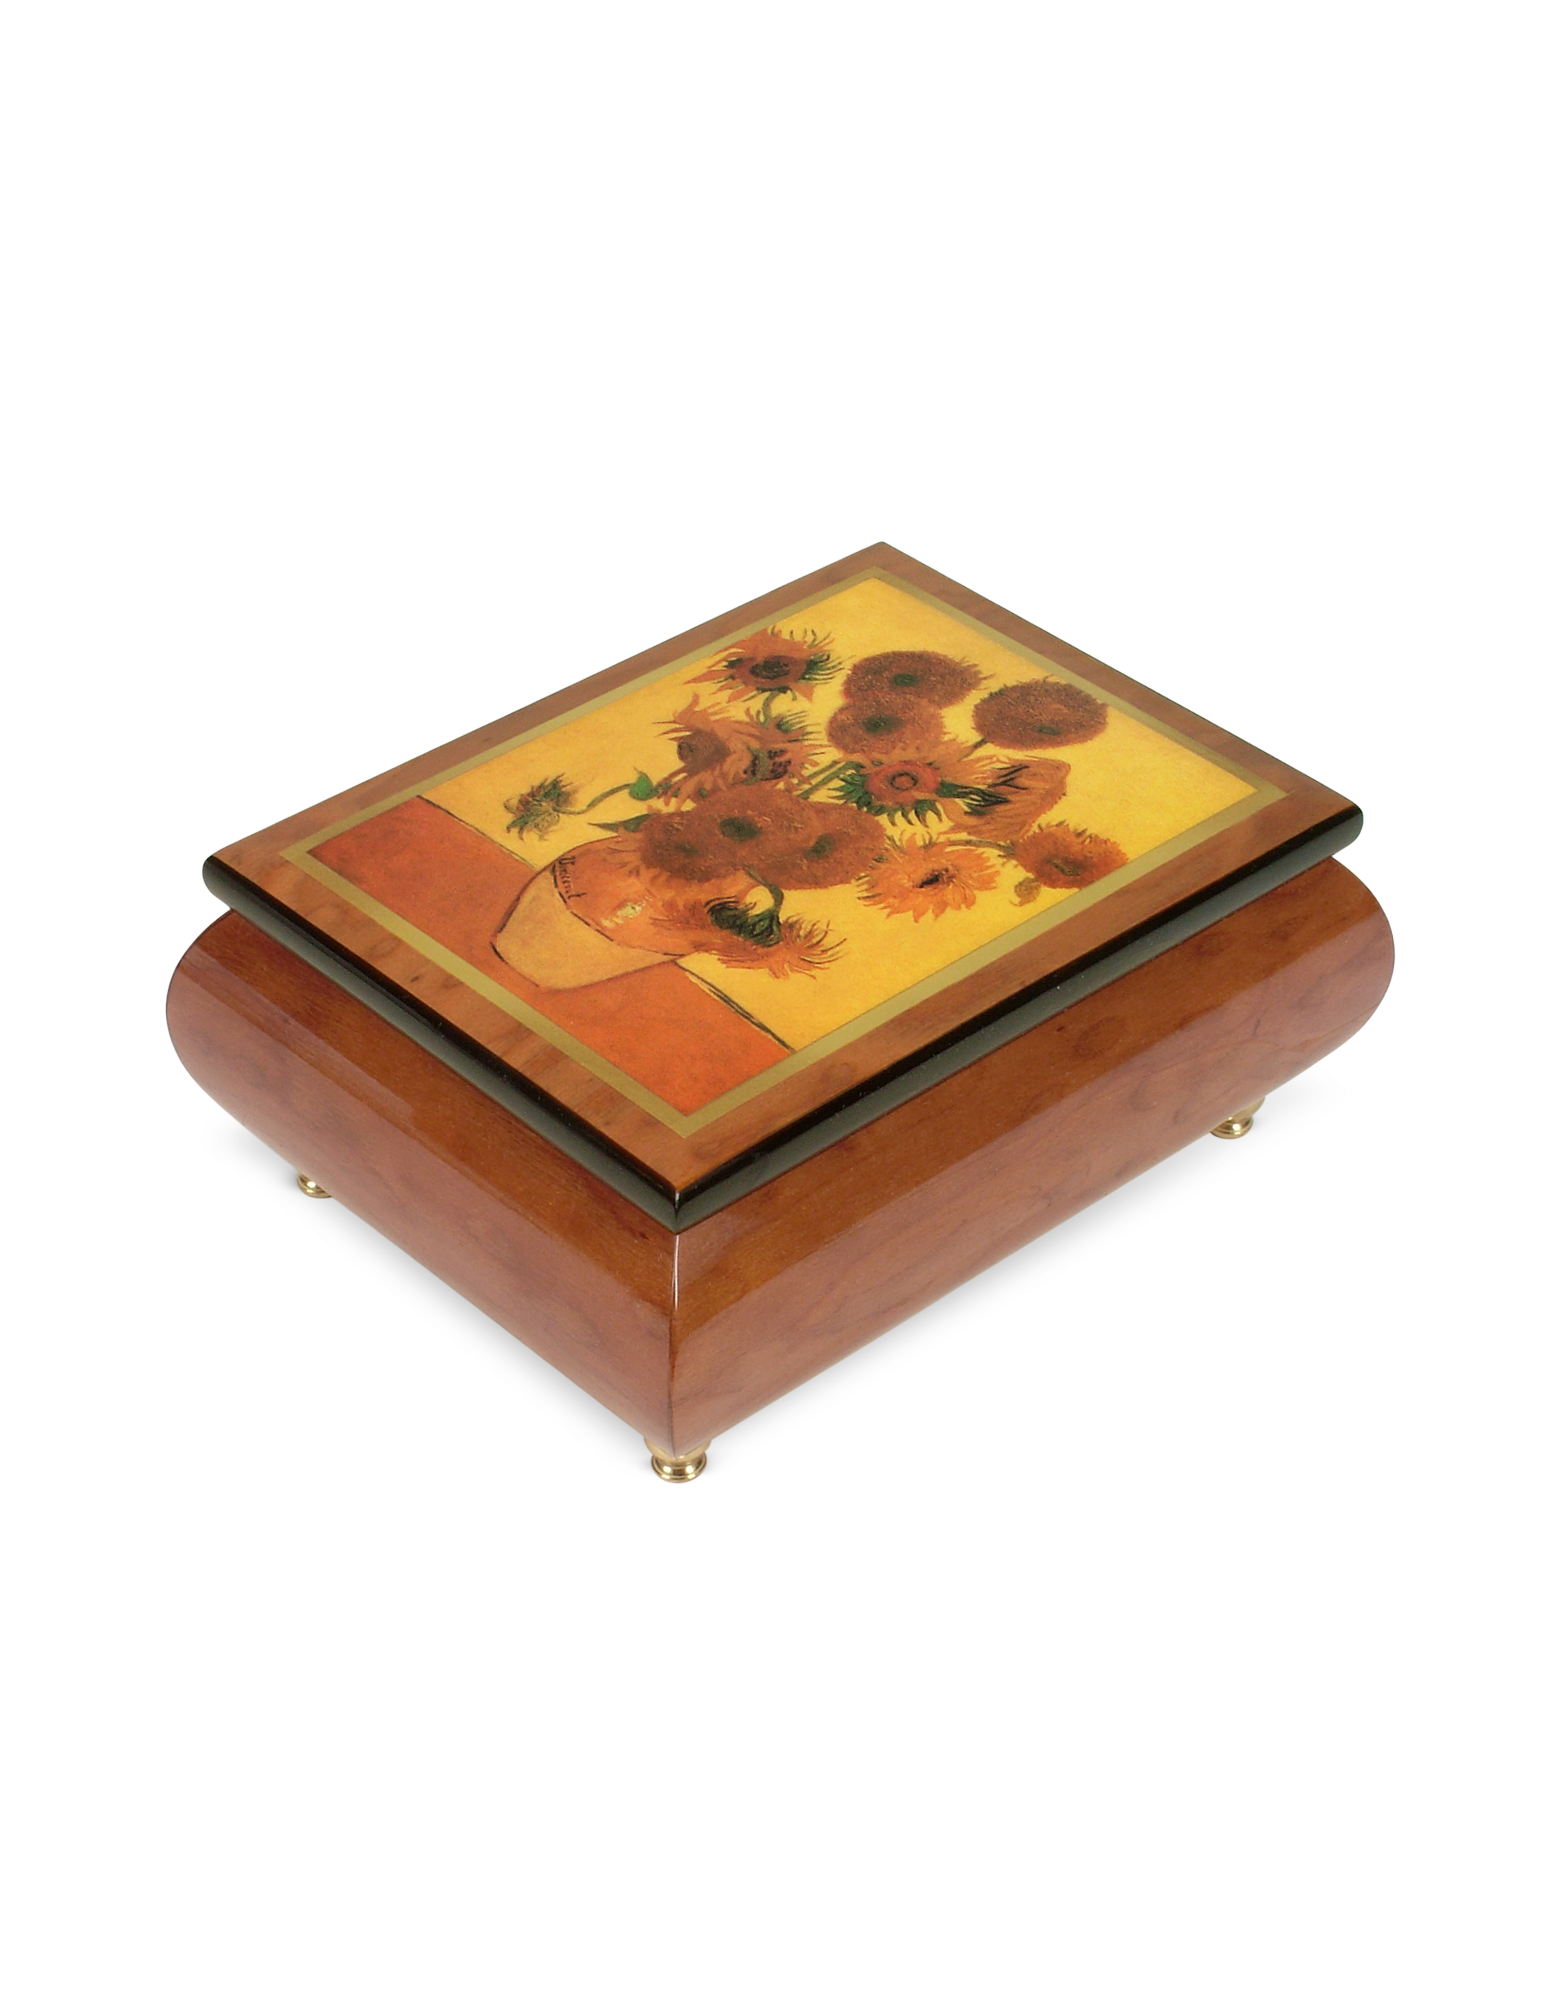 Image of It's a Small World - Sunflowers Musical Jewelry Box